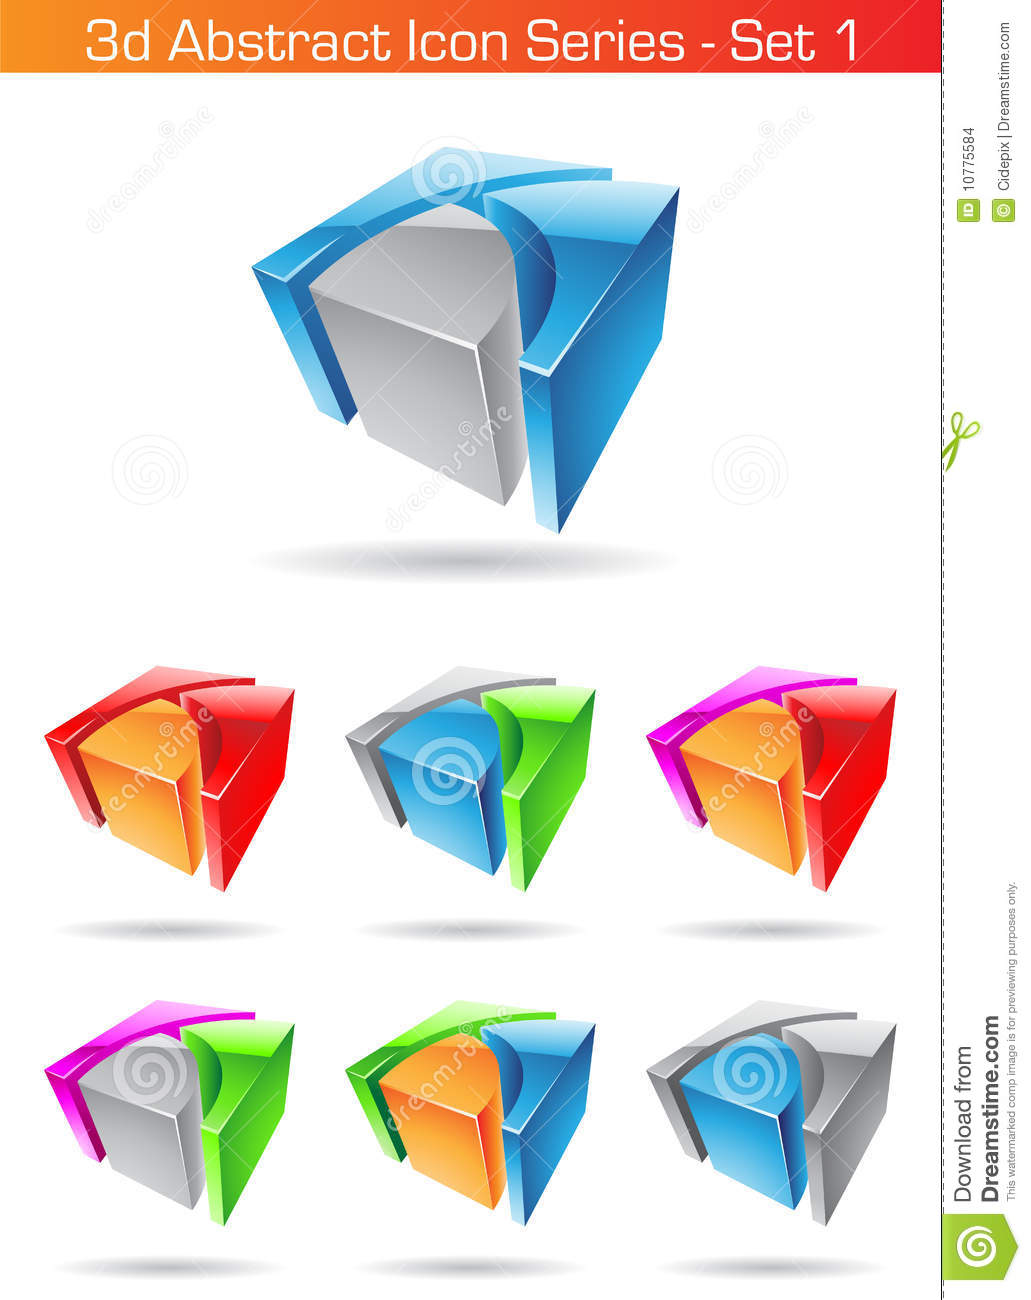 3d Abstract Icon Series - Set 1